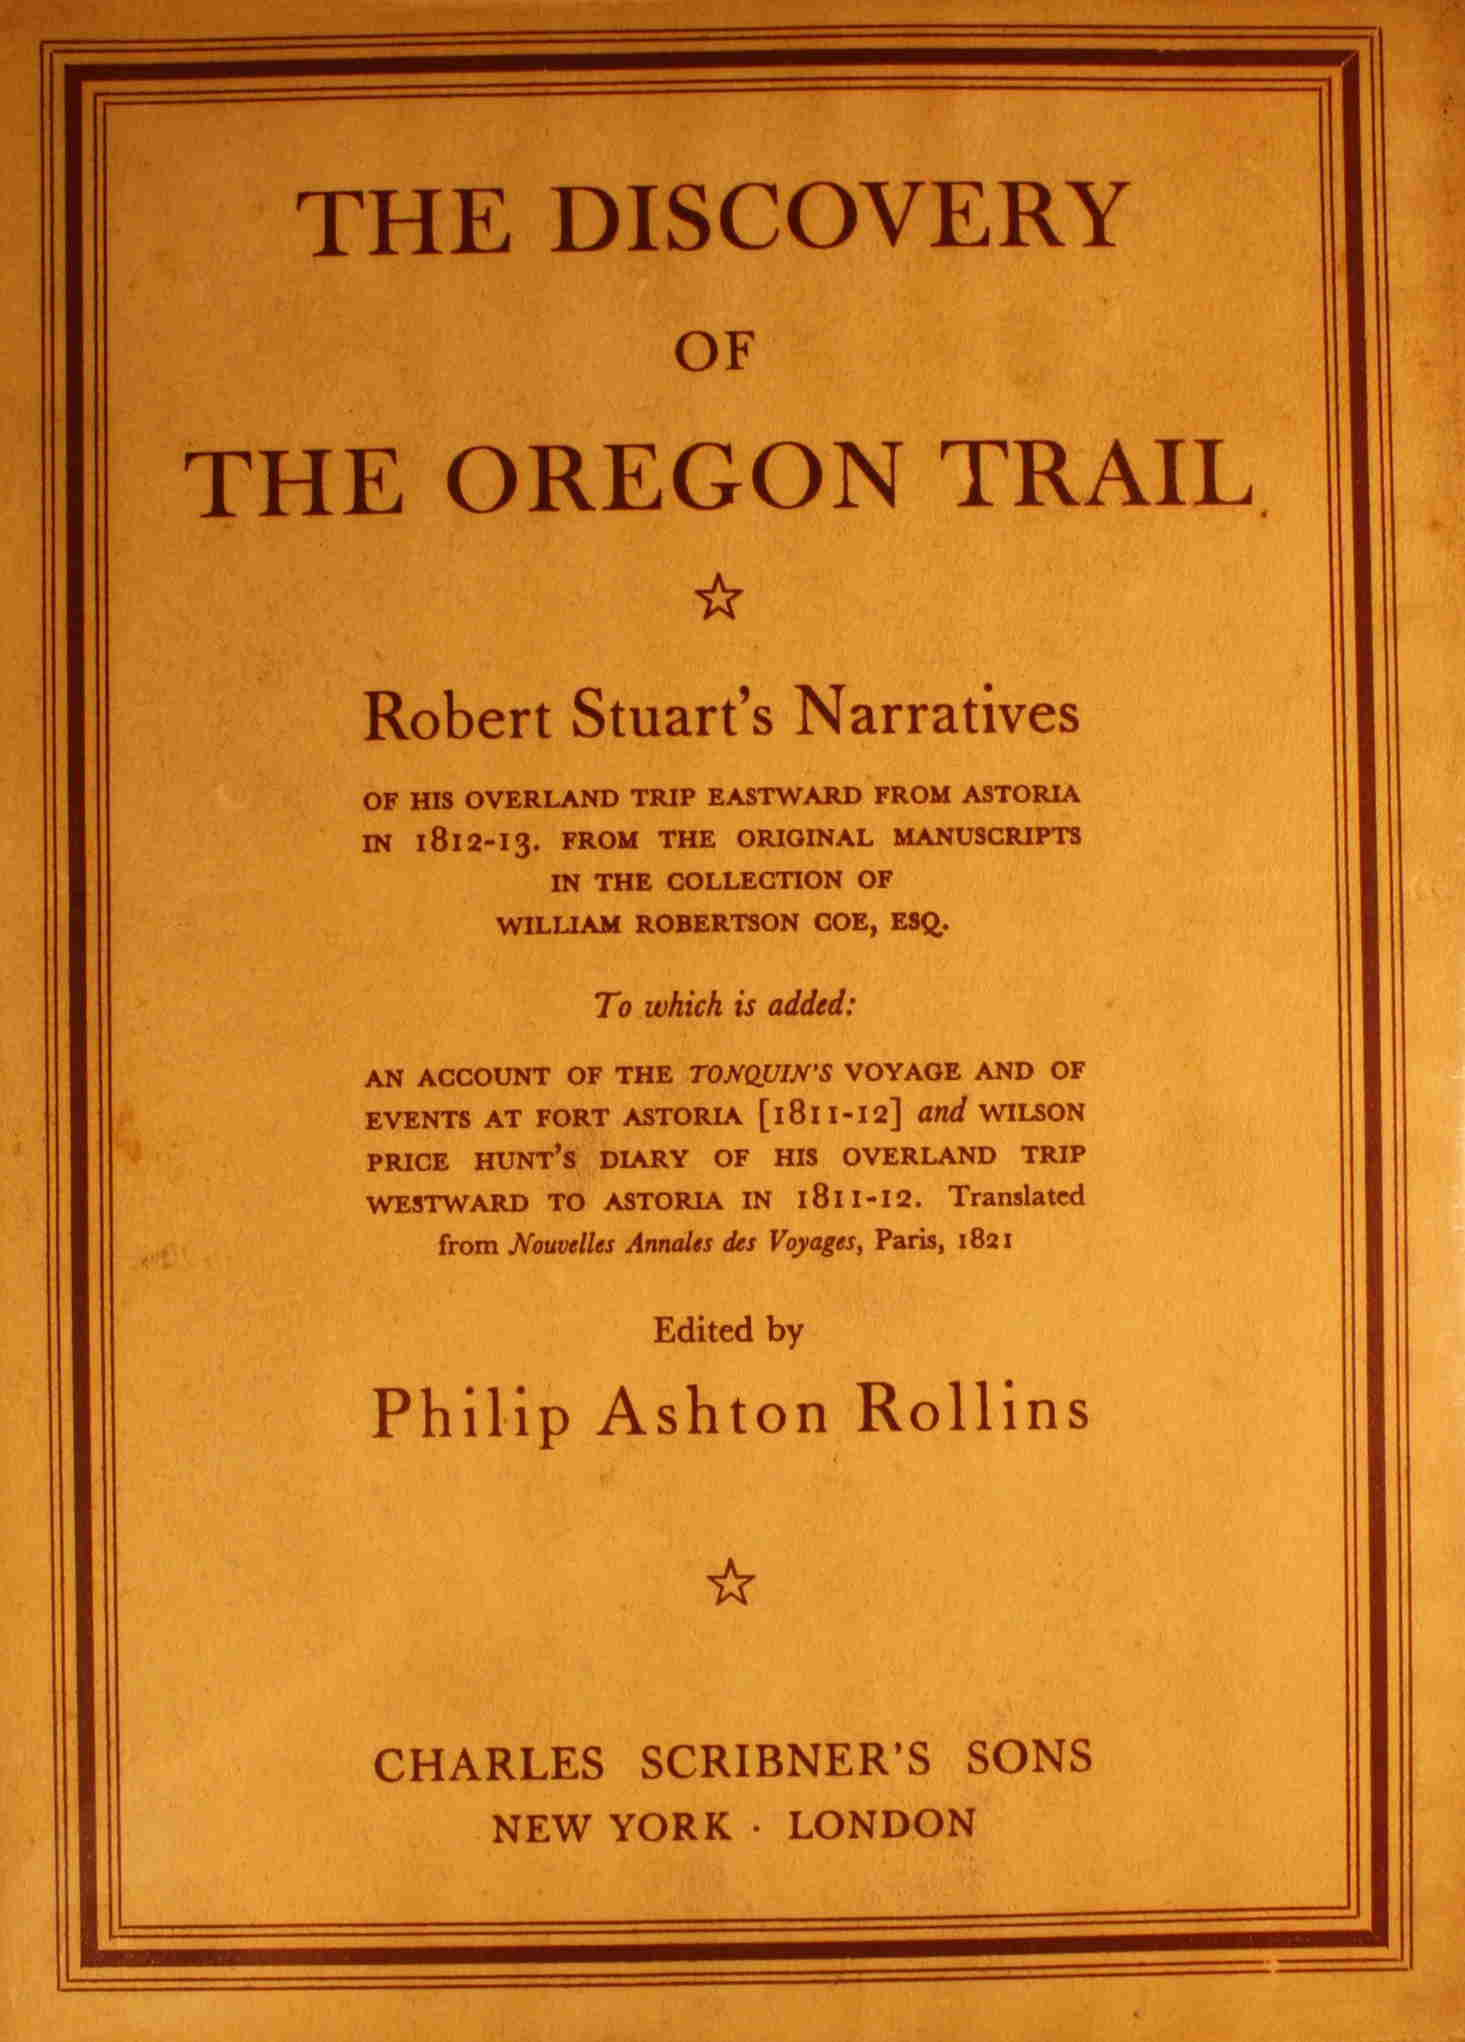 Image for The Discovery of the Oregon Trail Robert Stuart's Narratives Of His Overland Trip Eastward From Astoria in 1812-13 From the Original Manuscripts in the Collection of William Robertson Coe, ESQ.